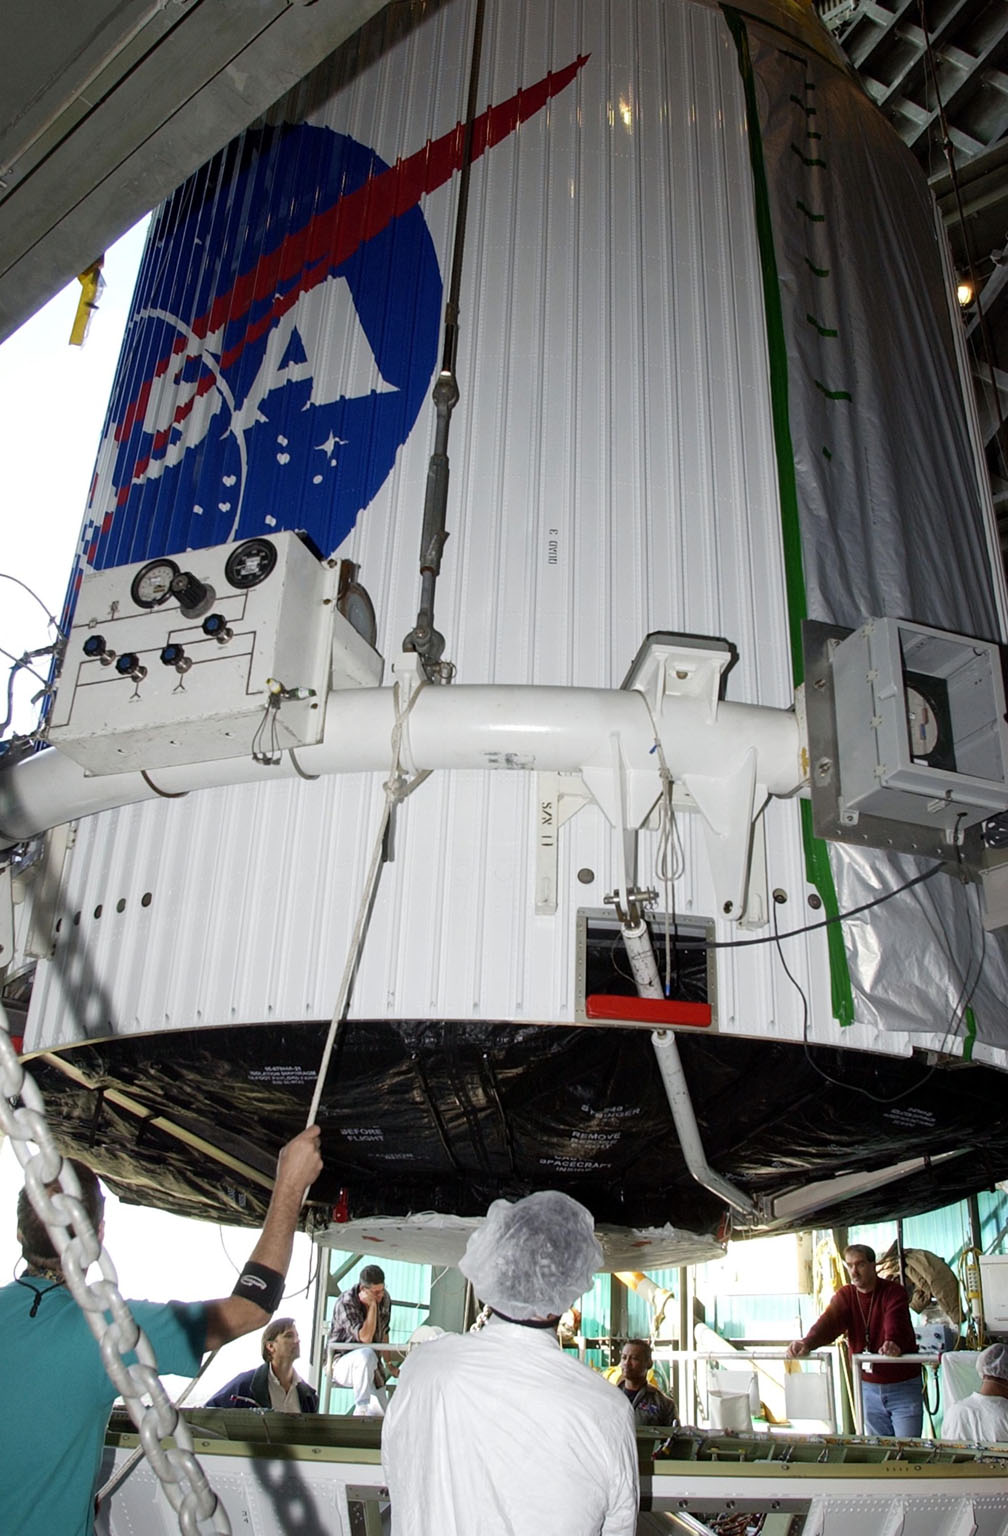 KENNEDY SPACE CENTER, FLA. -- The encapsulated TDRS-J satellite is lowered toward the Atlas IIA launch vehicle on Launch Complex 36-A, Cape Canaveral Air Force Station. The satellite is scheduled to be launched Dec. 4 aboard an Atlas IIA vehicle. The launch window is 9:42 to 10:22 p.m. EST. TDRS-J, the third in a series of telemetry satellites, will help replenish the current constellation of geosynchronous TDRS satellites that are the primary source of space-to-ground voice, data and telemetry for the Space Shuttle. The satellites also provide communications with the International Space Station and scientific spacecraft in low-Earth orbit such as the Hubble Space Telescope. This new advanced series of satellites will extend the availability of TDRS communications services until about 2017..